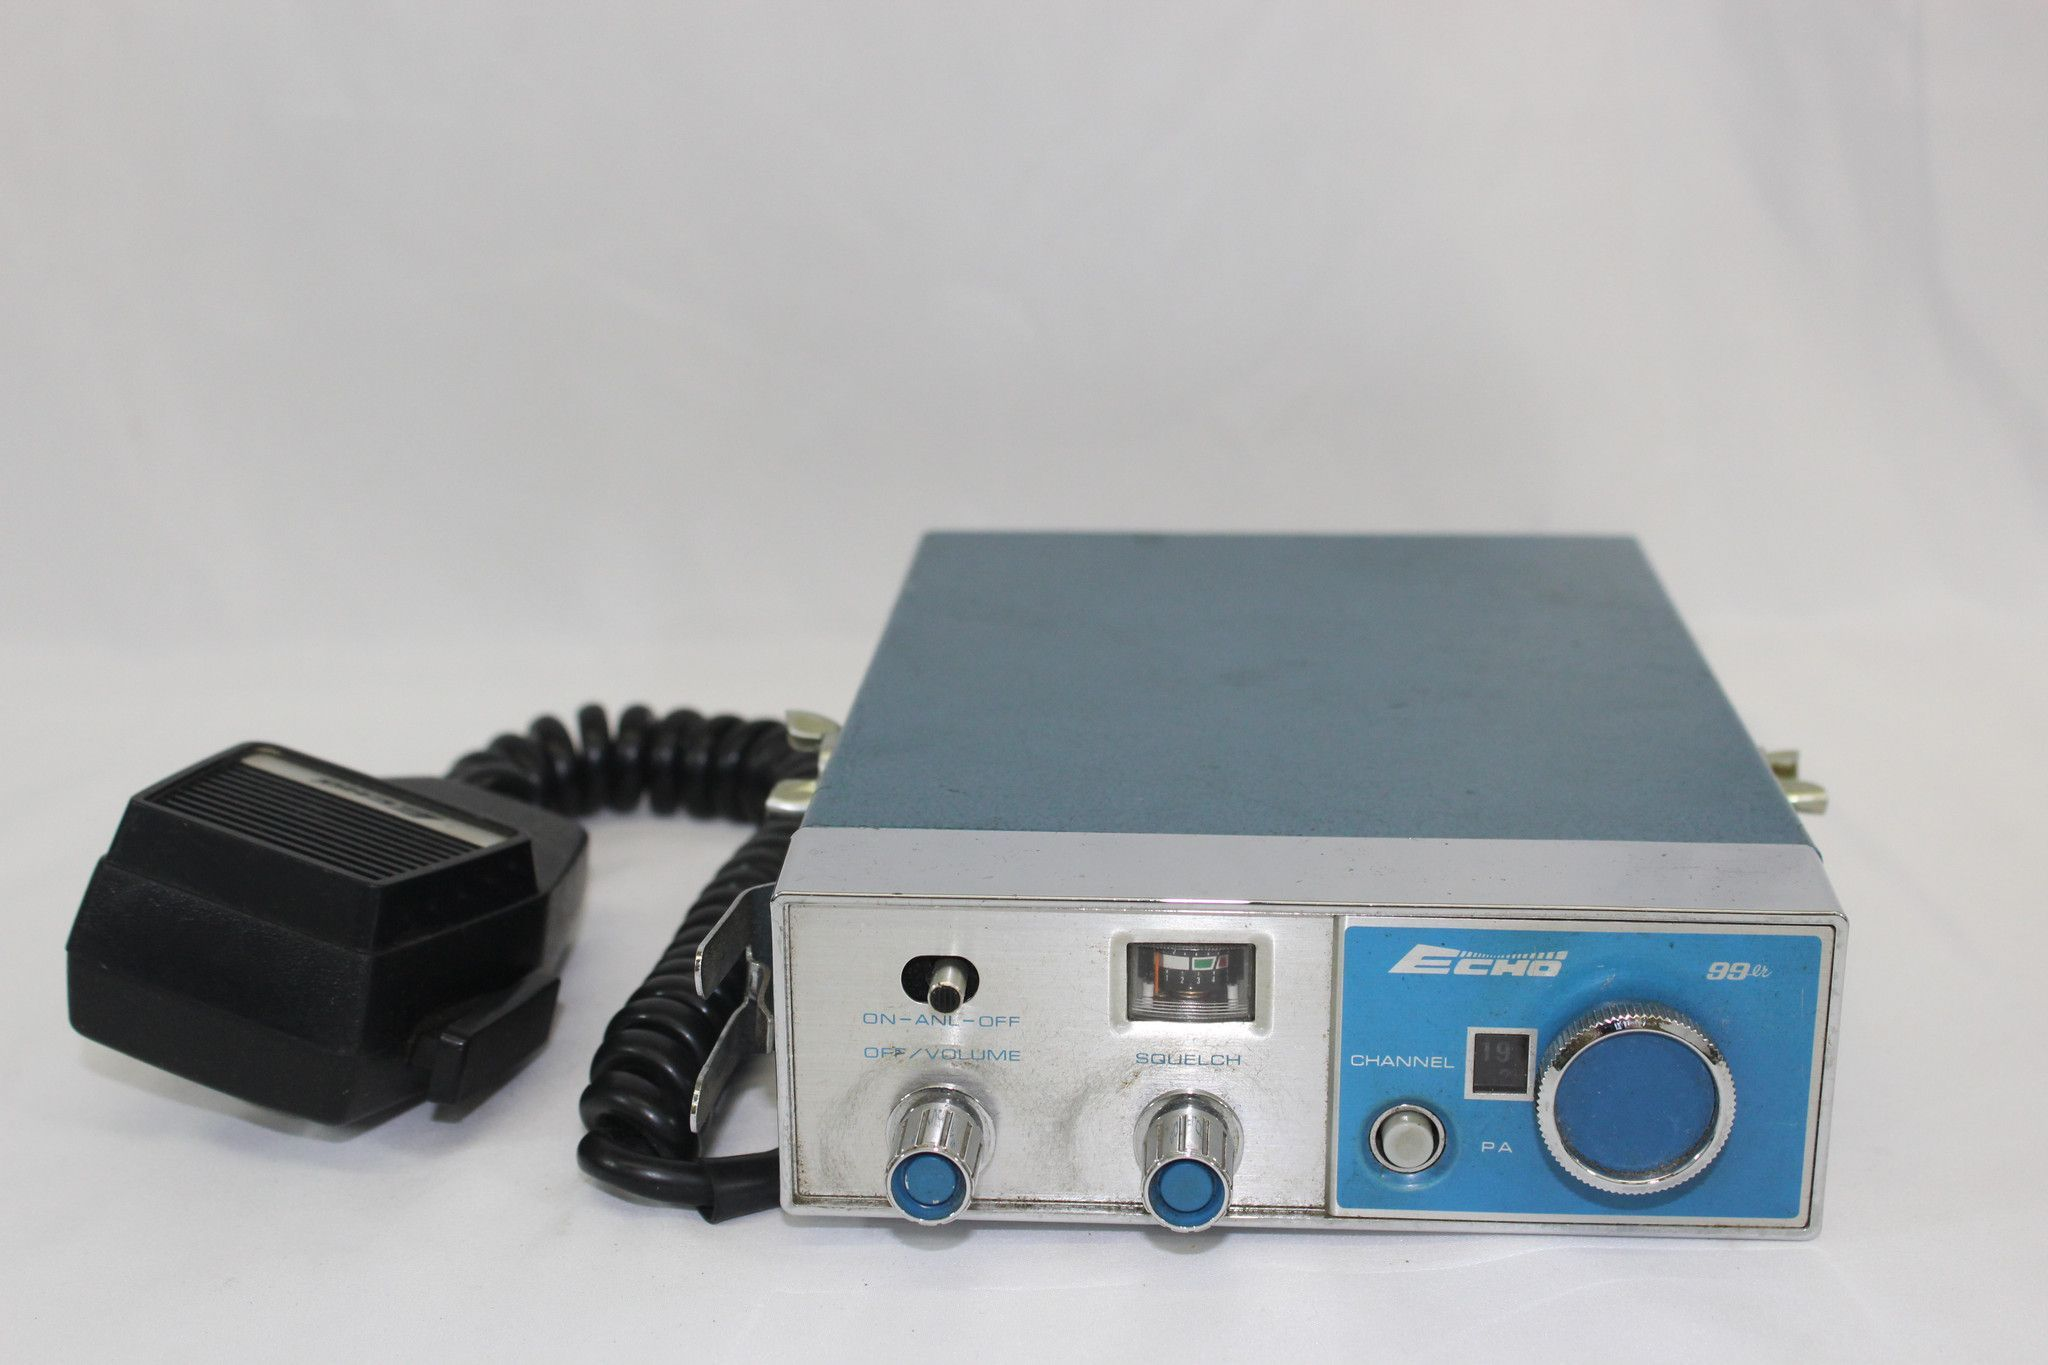 small resolution of echo 99er cb radio 23 channel citizens band transceiver